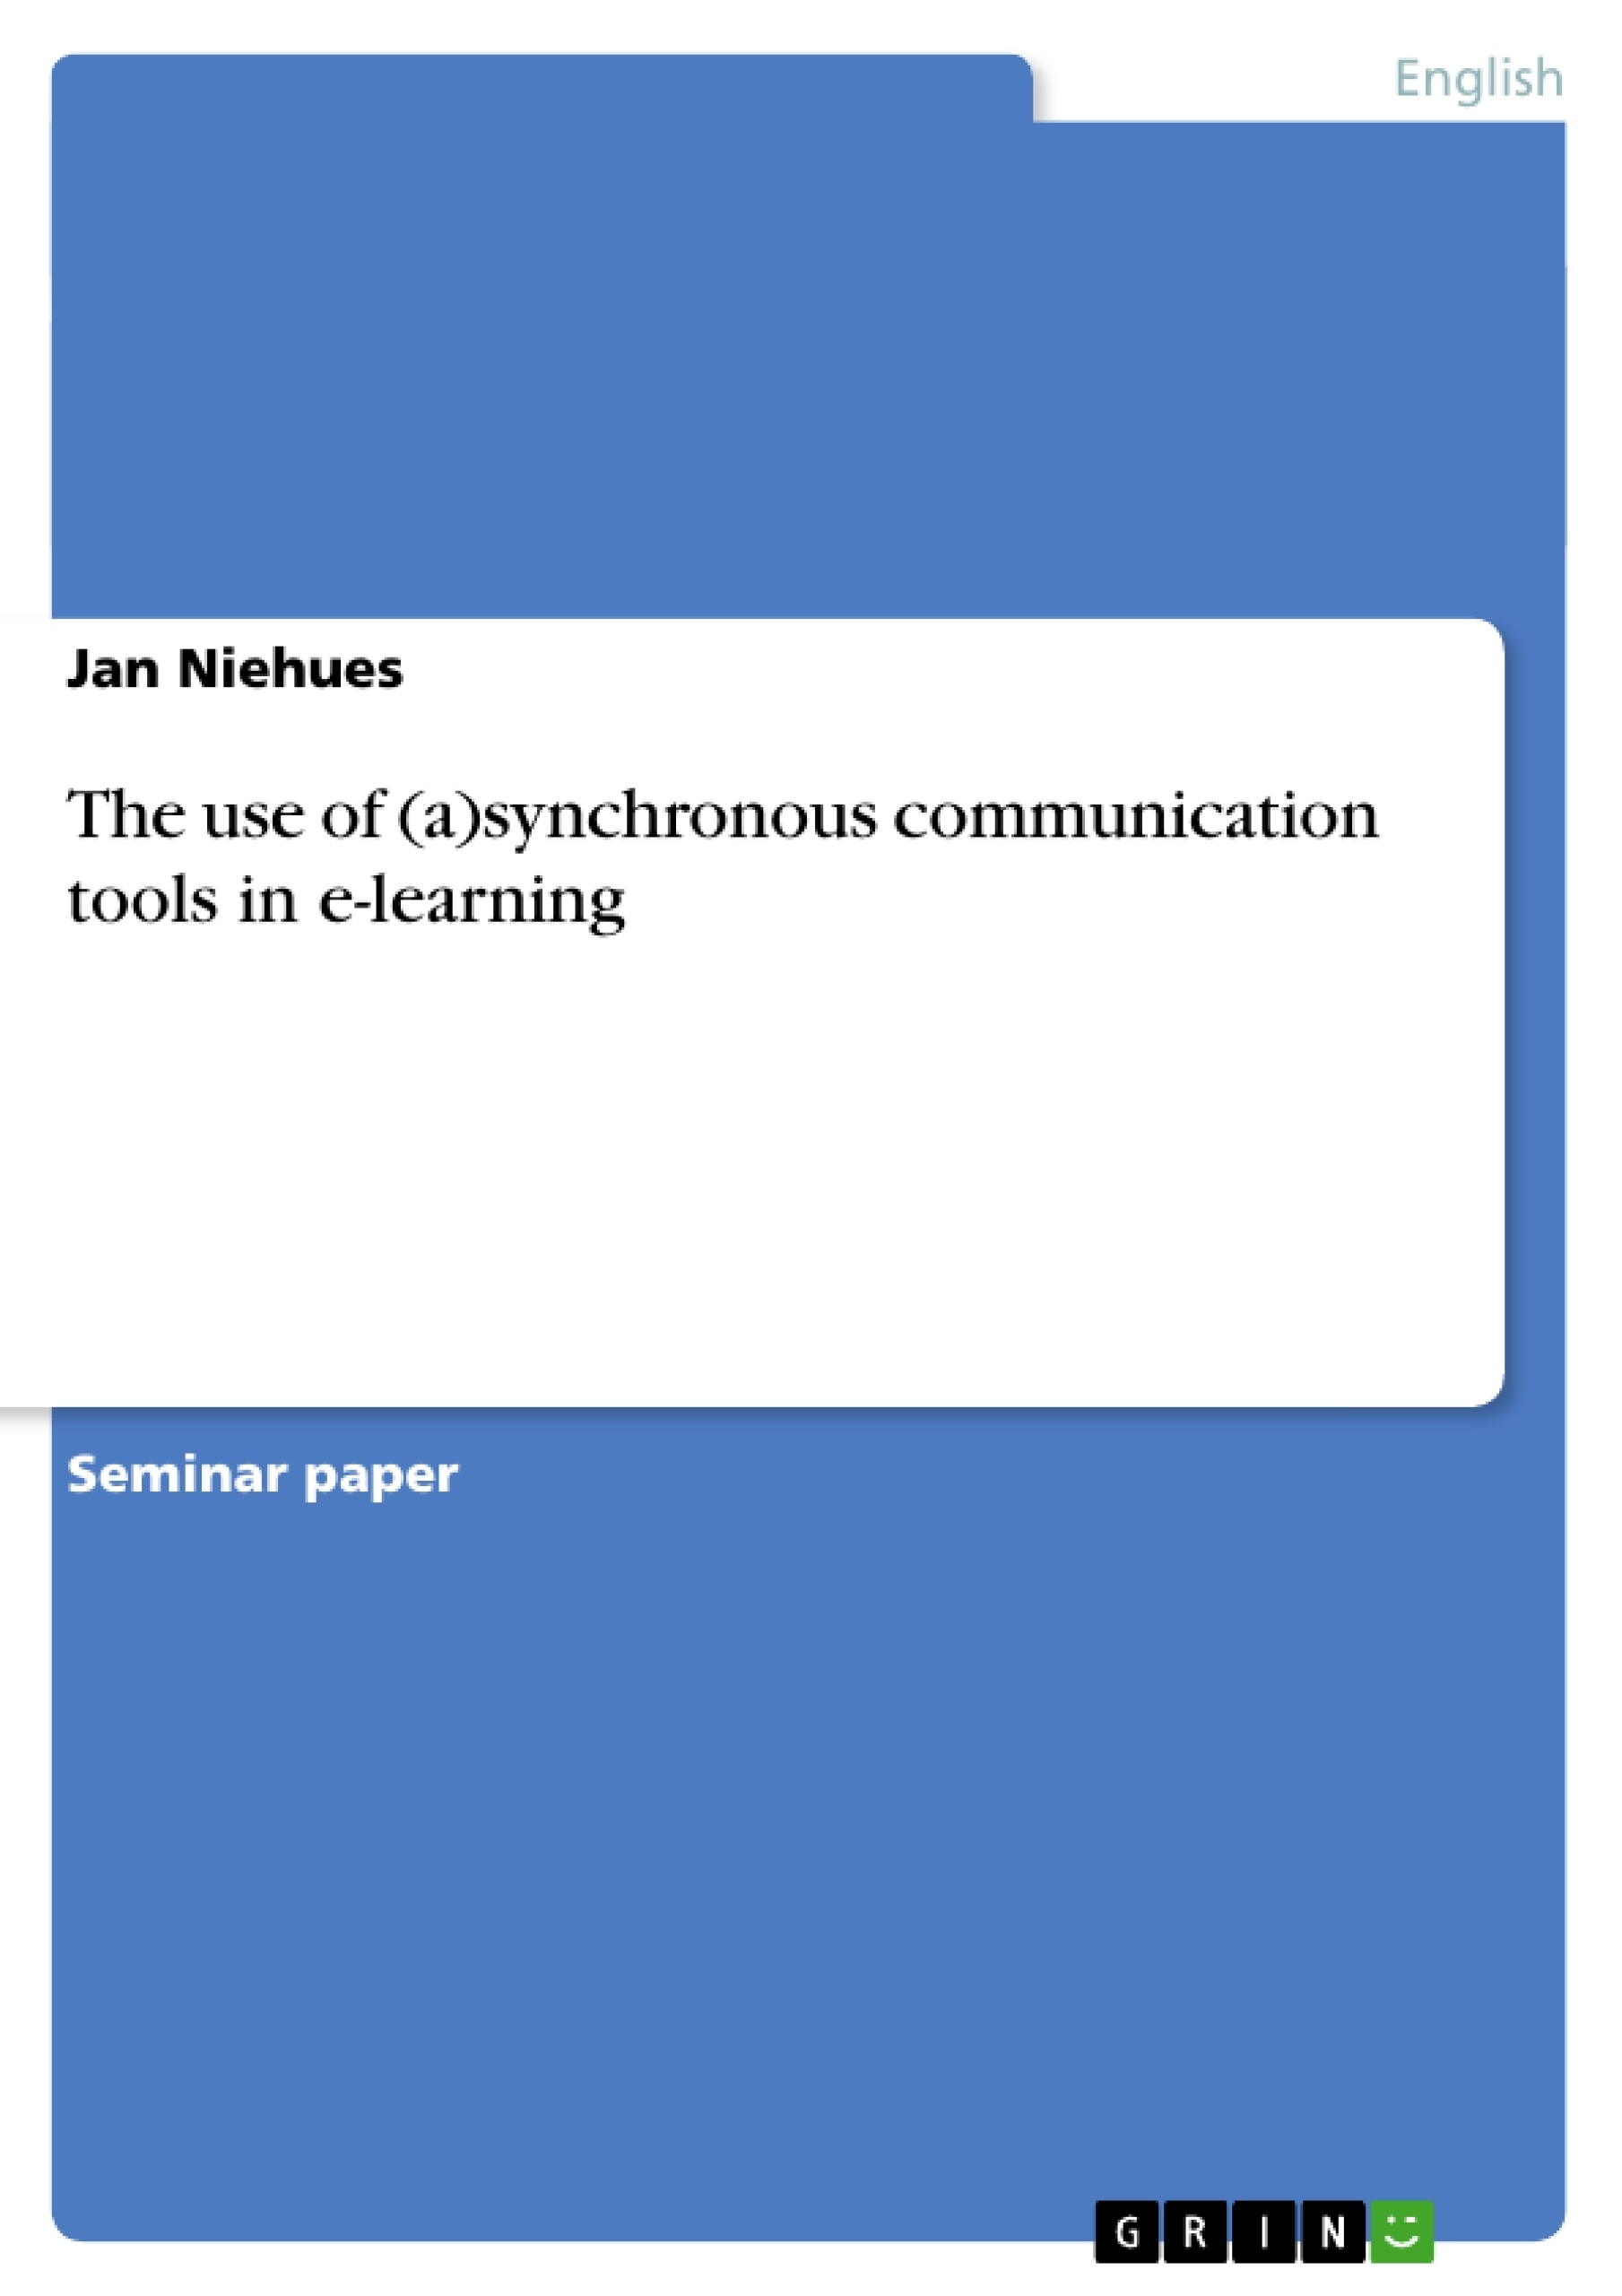 Title: The use of (a)synchronous communication tools in e-learning